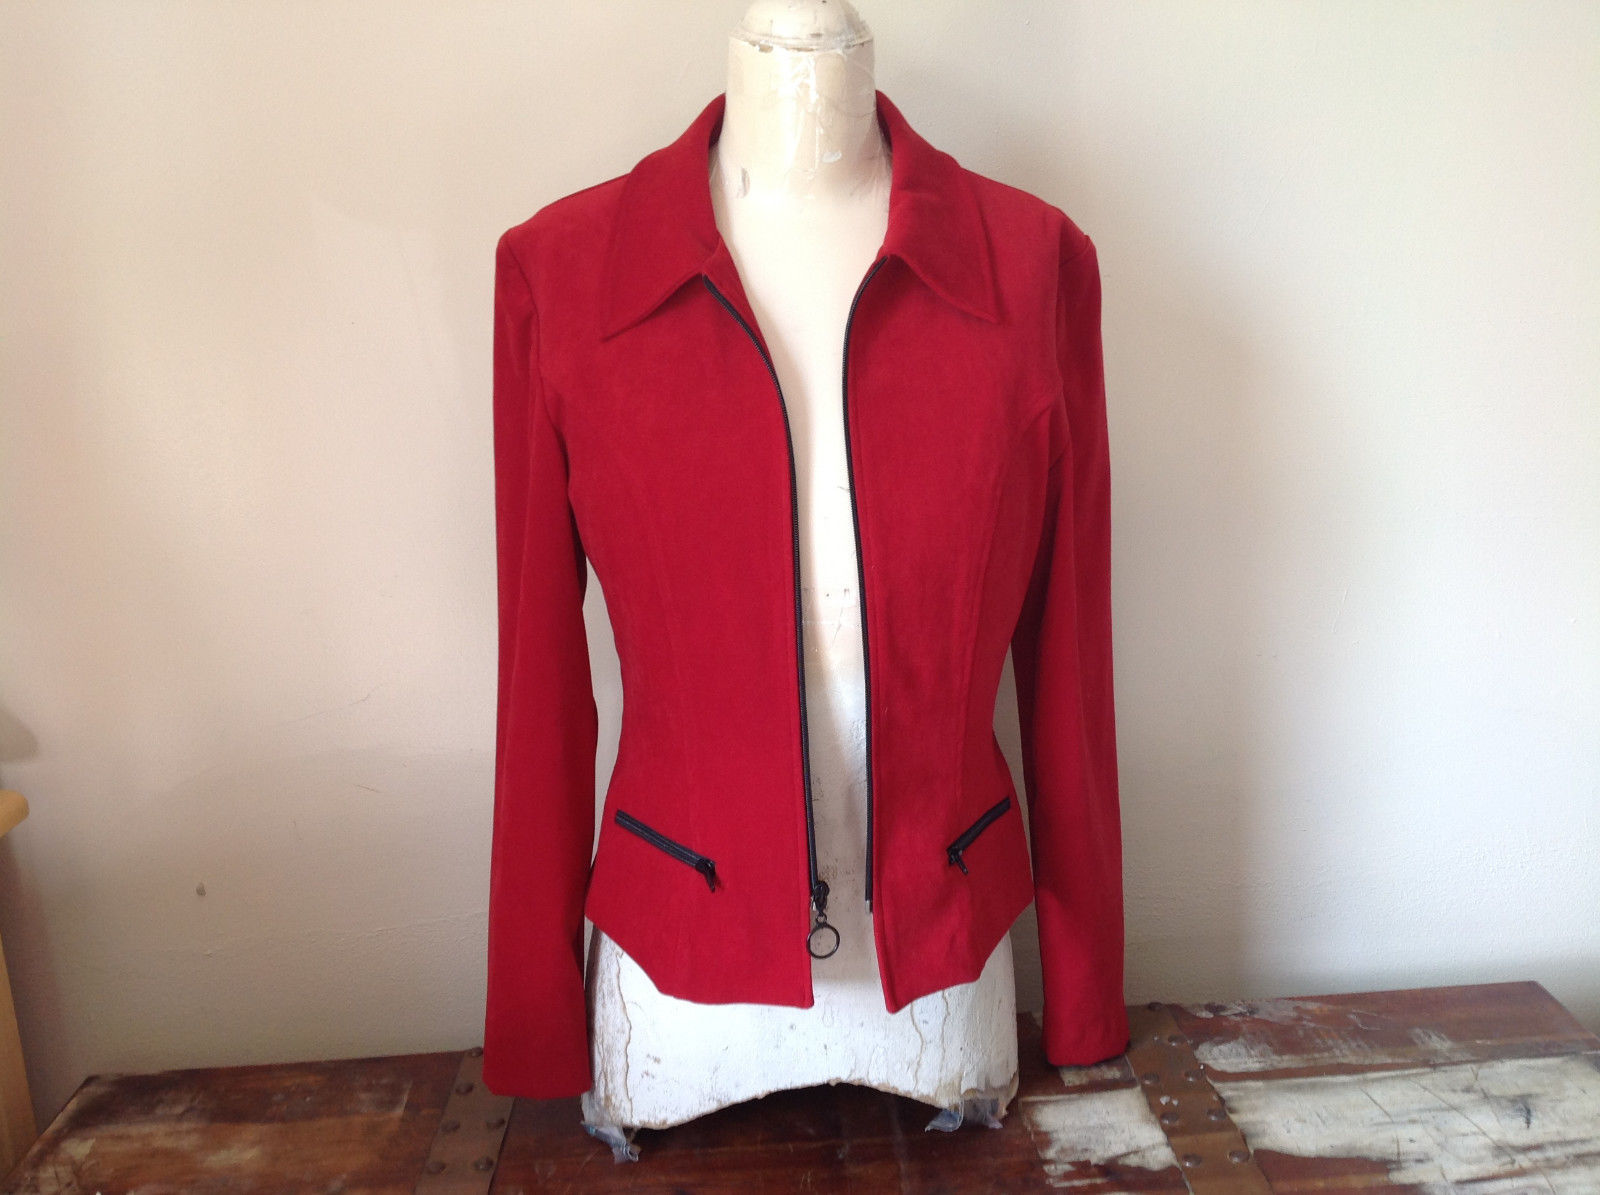 Amanda Smith Short Red Zipper Dress Jacket Perfect Condition Size 6